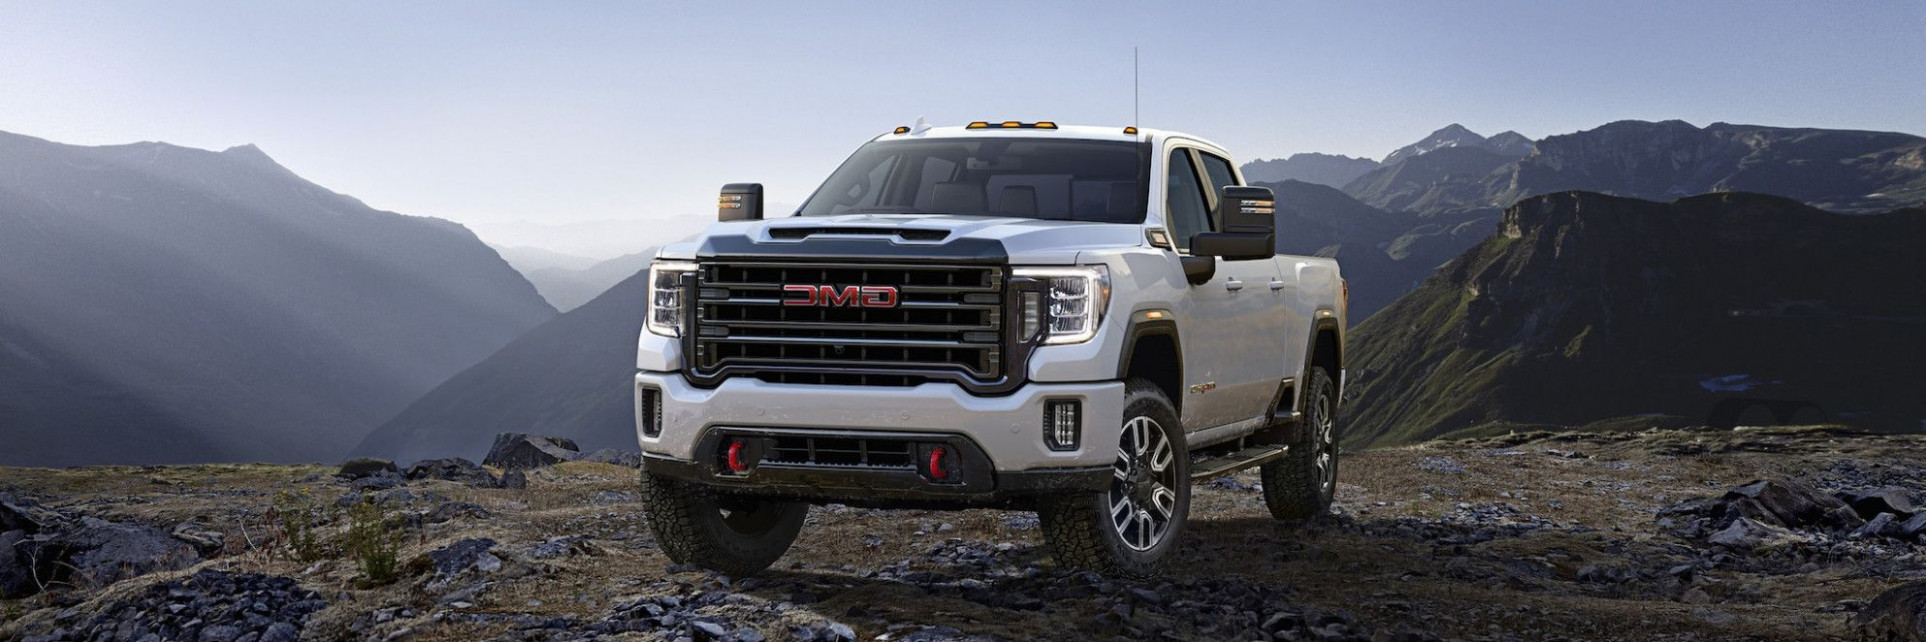 How To Leave 7 GMC X7 For Sale Without Being Noticed | Buick ..